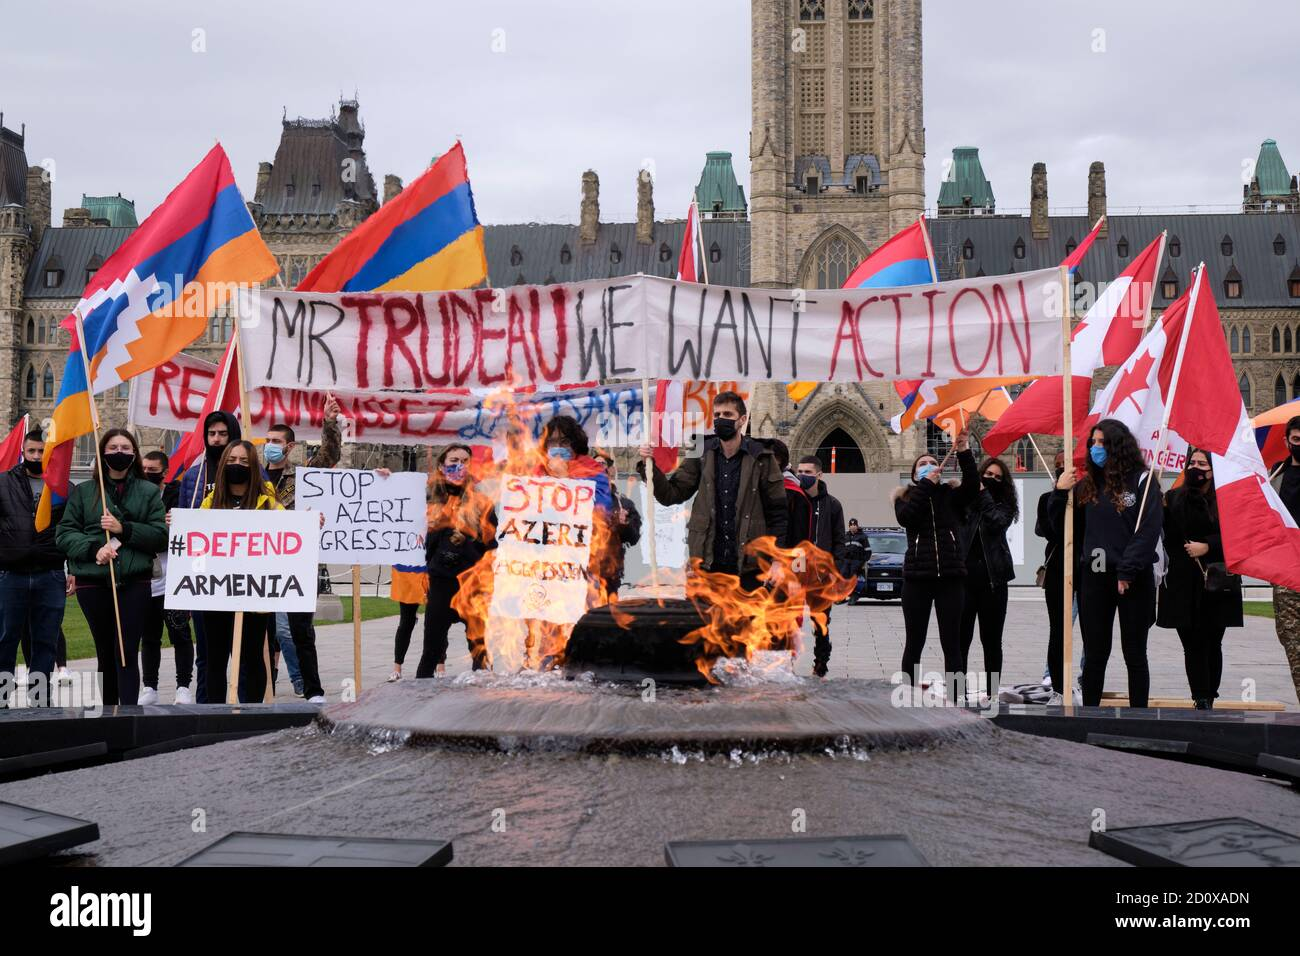 armenian-lead-protest-to-stop-the-azeri-aggression-on-artzakh-in-front-of-canadian-parliament-ottawa-canada-october-3-2020-2D0XADN.jpg